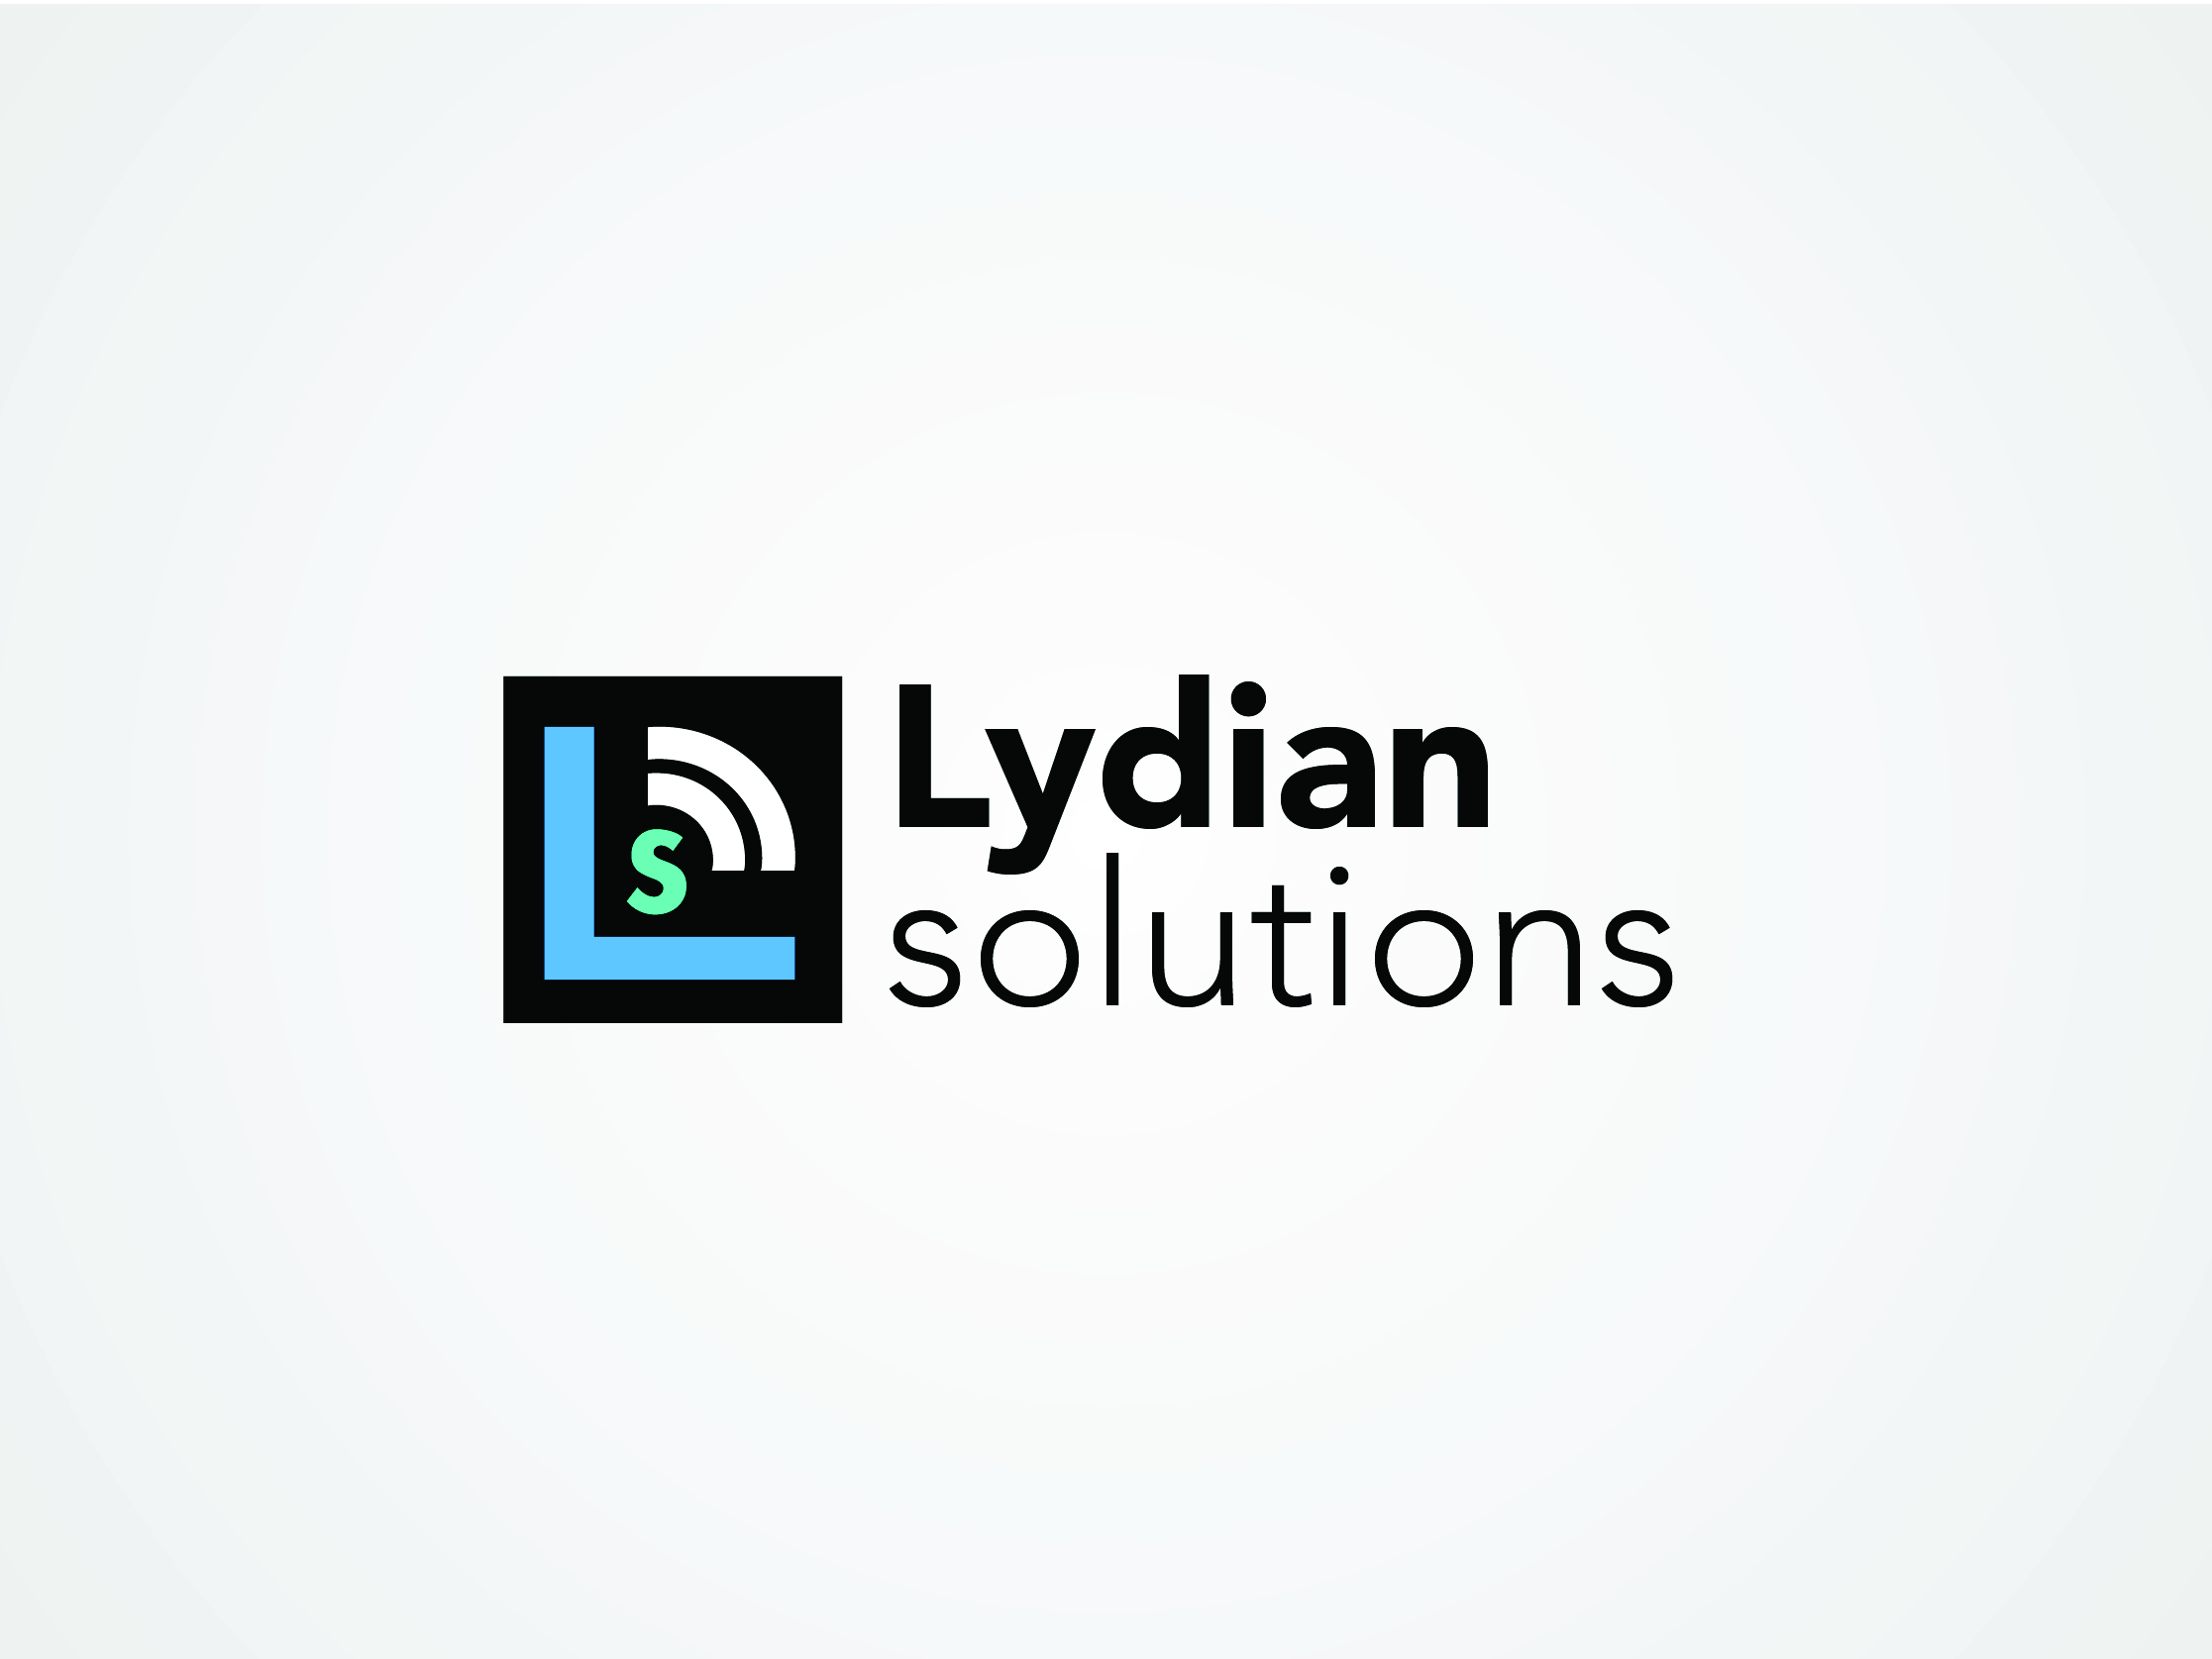 Logo Design by hali3n - Entry No. 17 in the Logo Design Contest Fun Logo Design for Lydian Solutions.